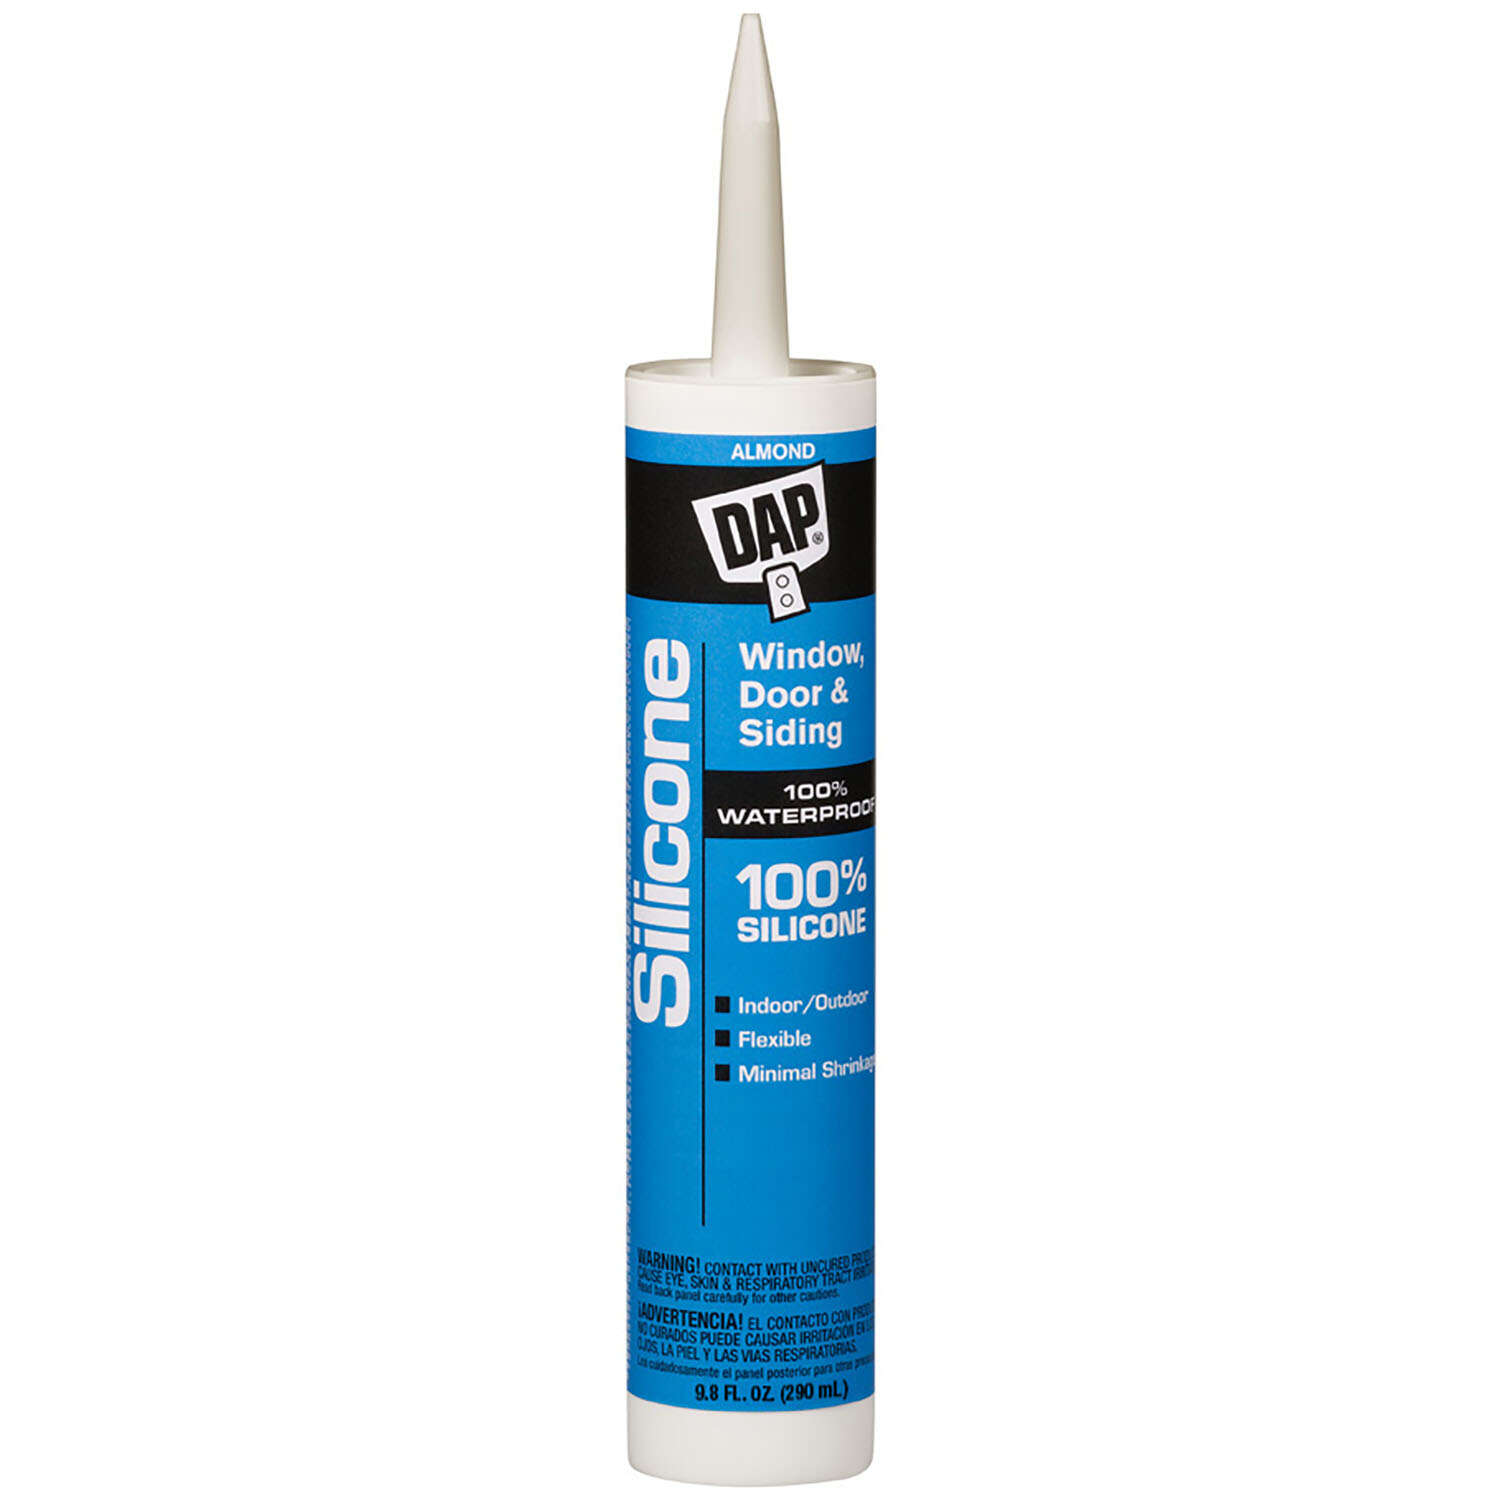 DAP  Almond  Silicone Rubber  Door, Siding and Window  Sealant  10.1 oz.